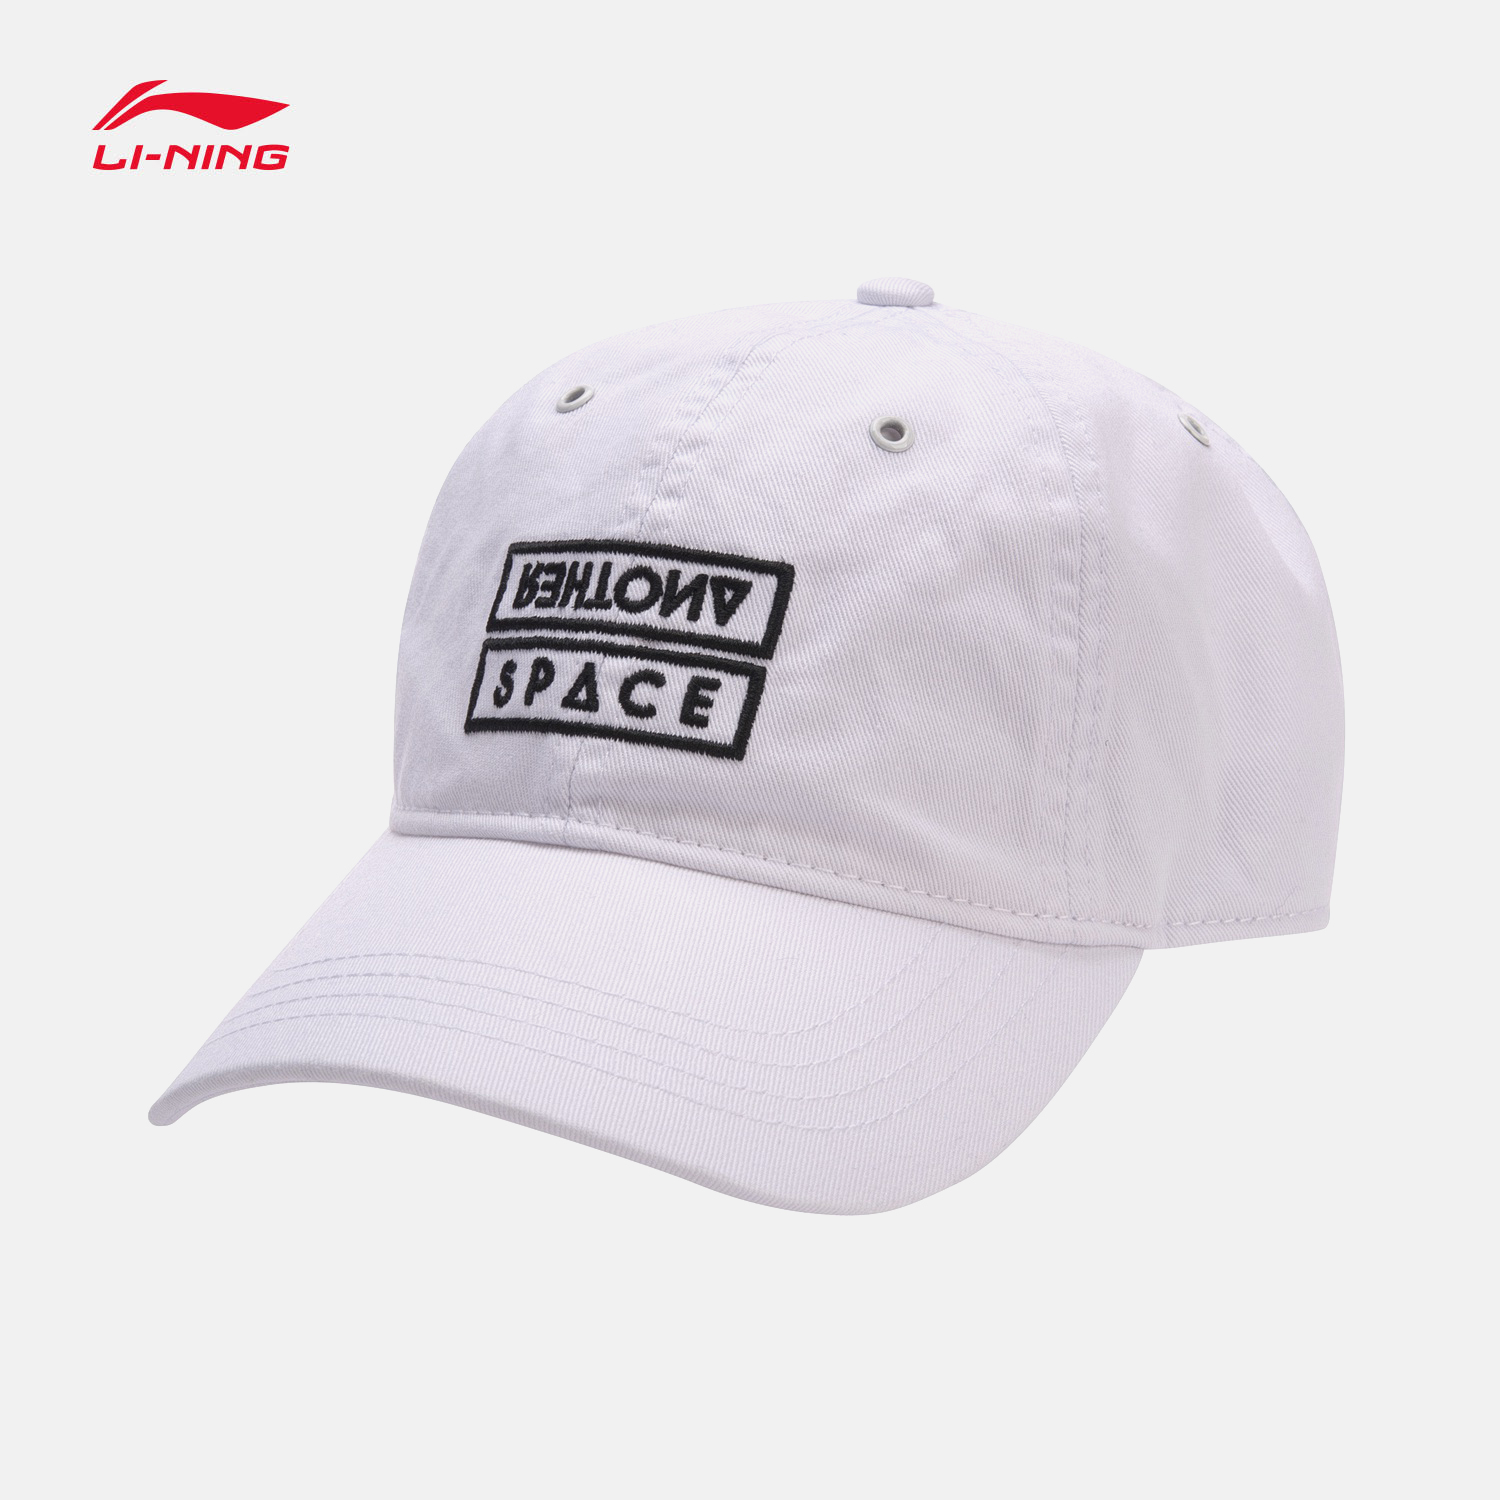 Li Ning Sports Cap Spring New Baseball Cap Sports Fashion Series for Men and Women